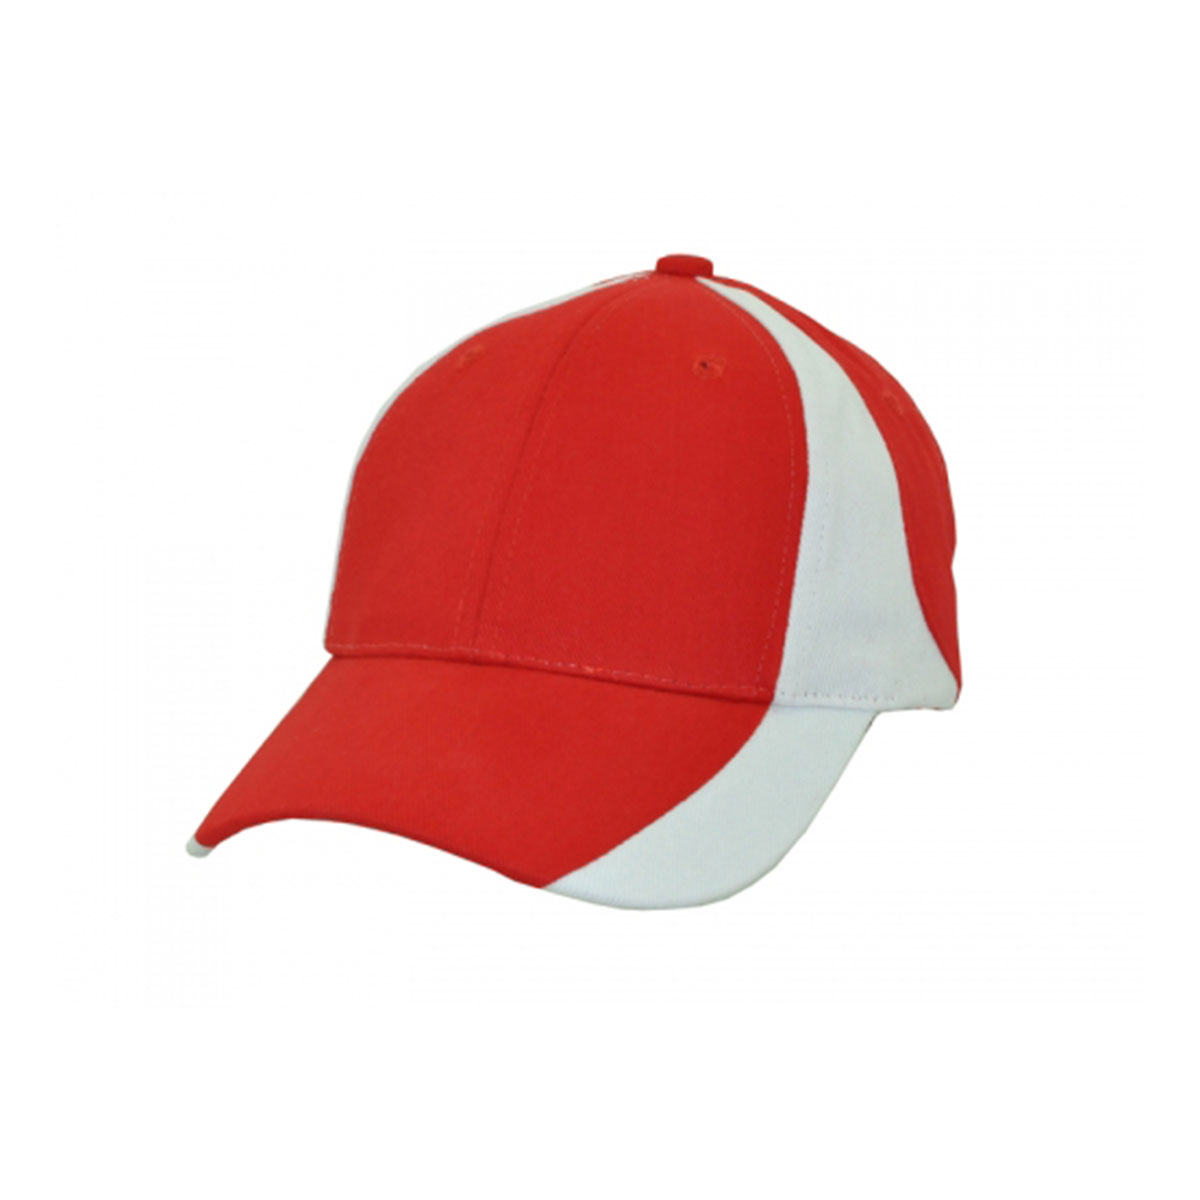 Vertek Cap-Red / White